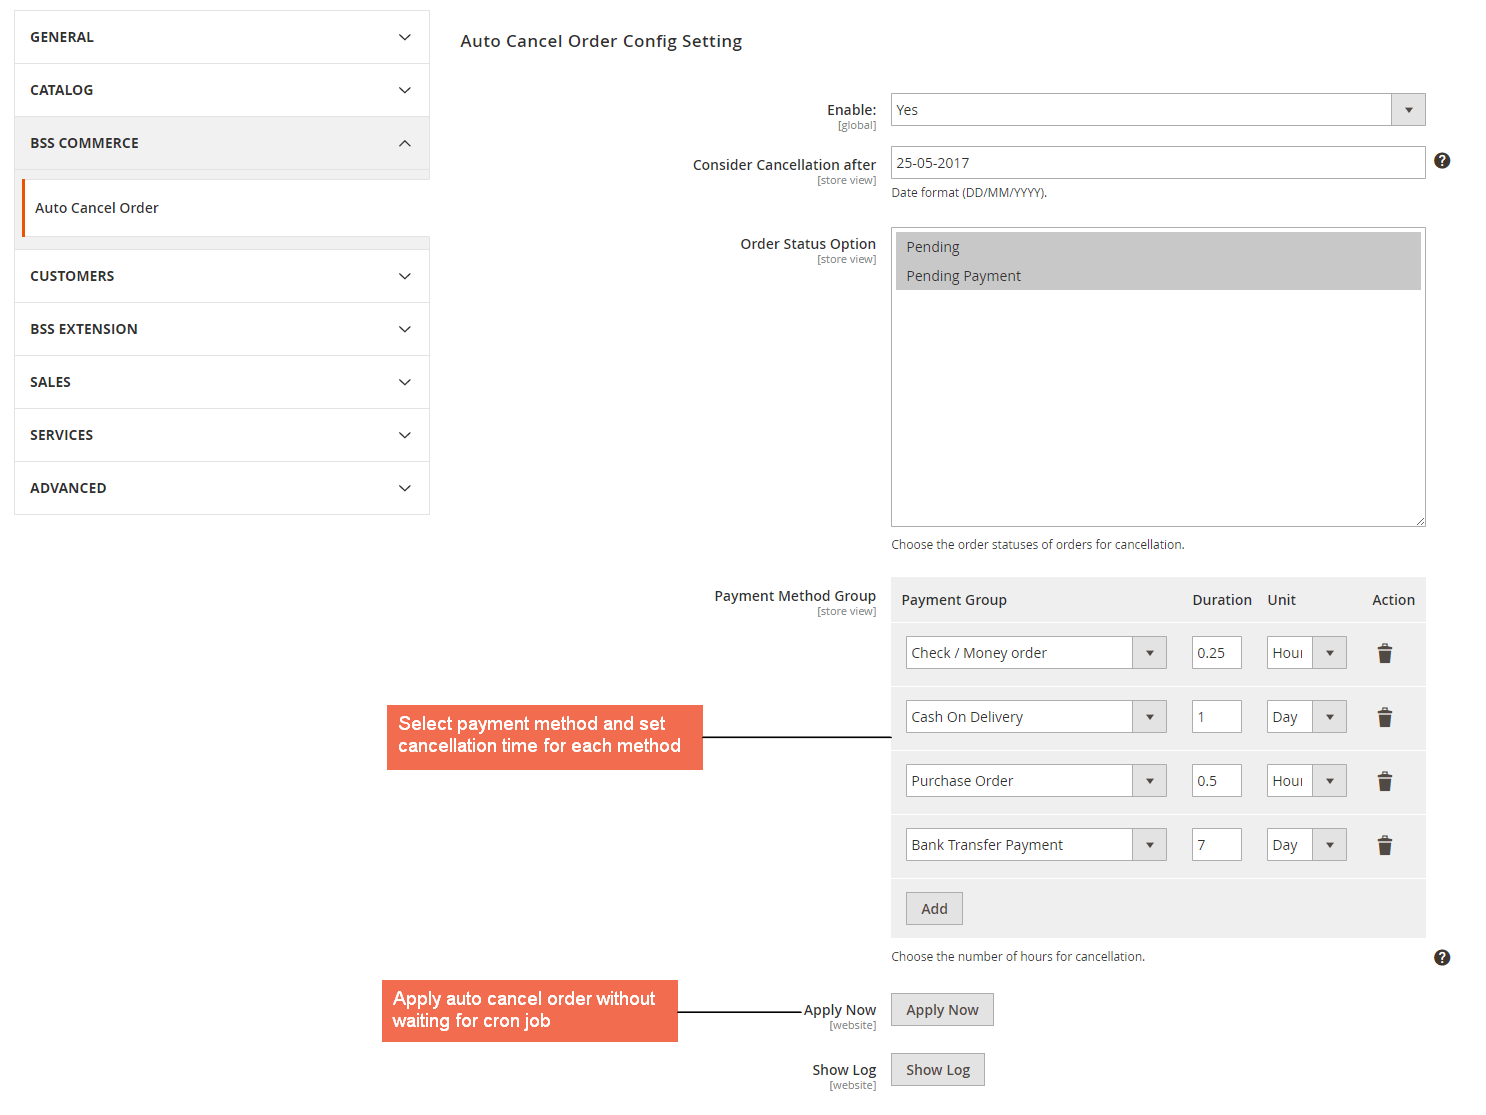 Configure cancelation time for specific payment methods in General Config